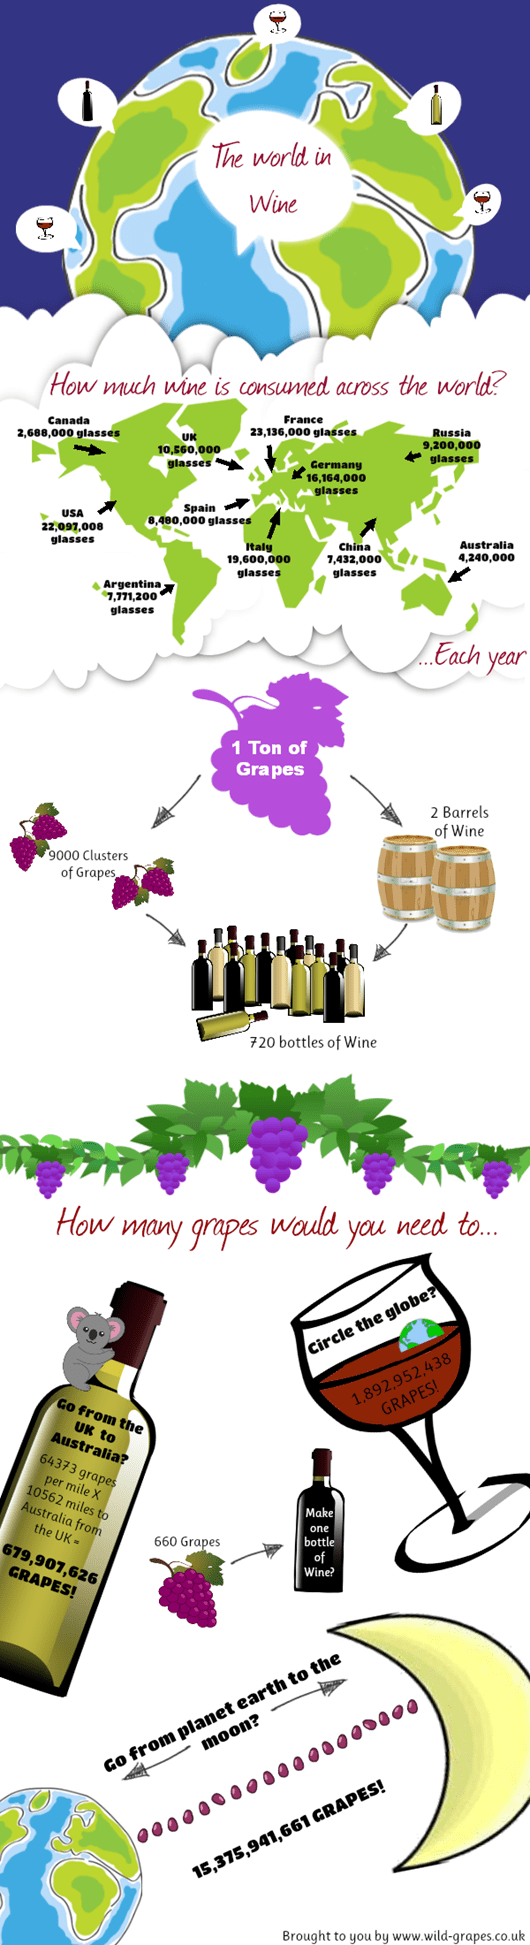 The World in Wine - INFOGRAPHIC